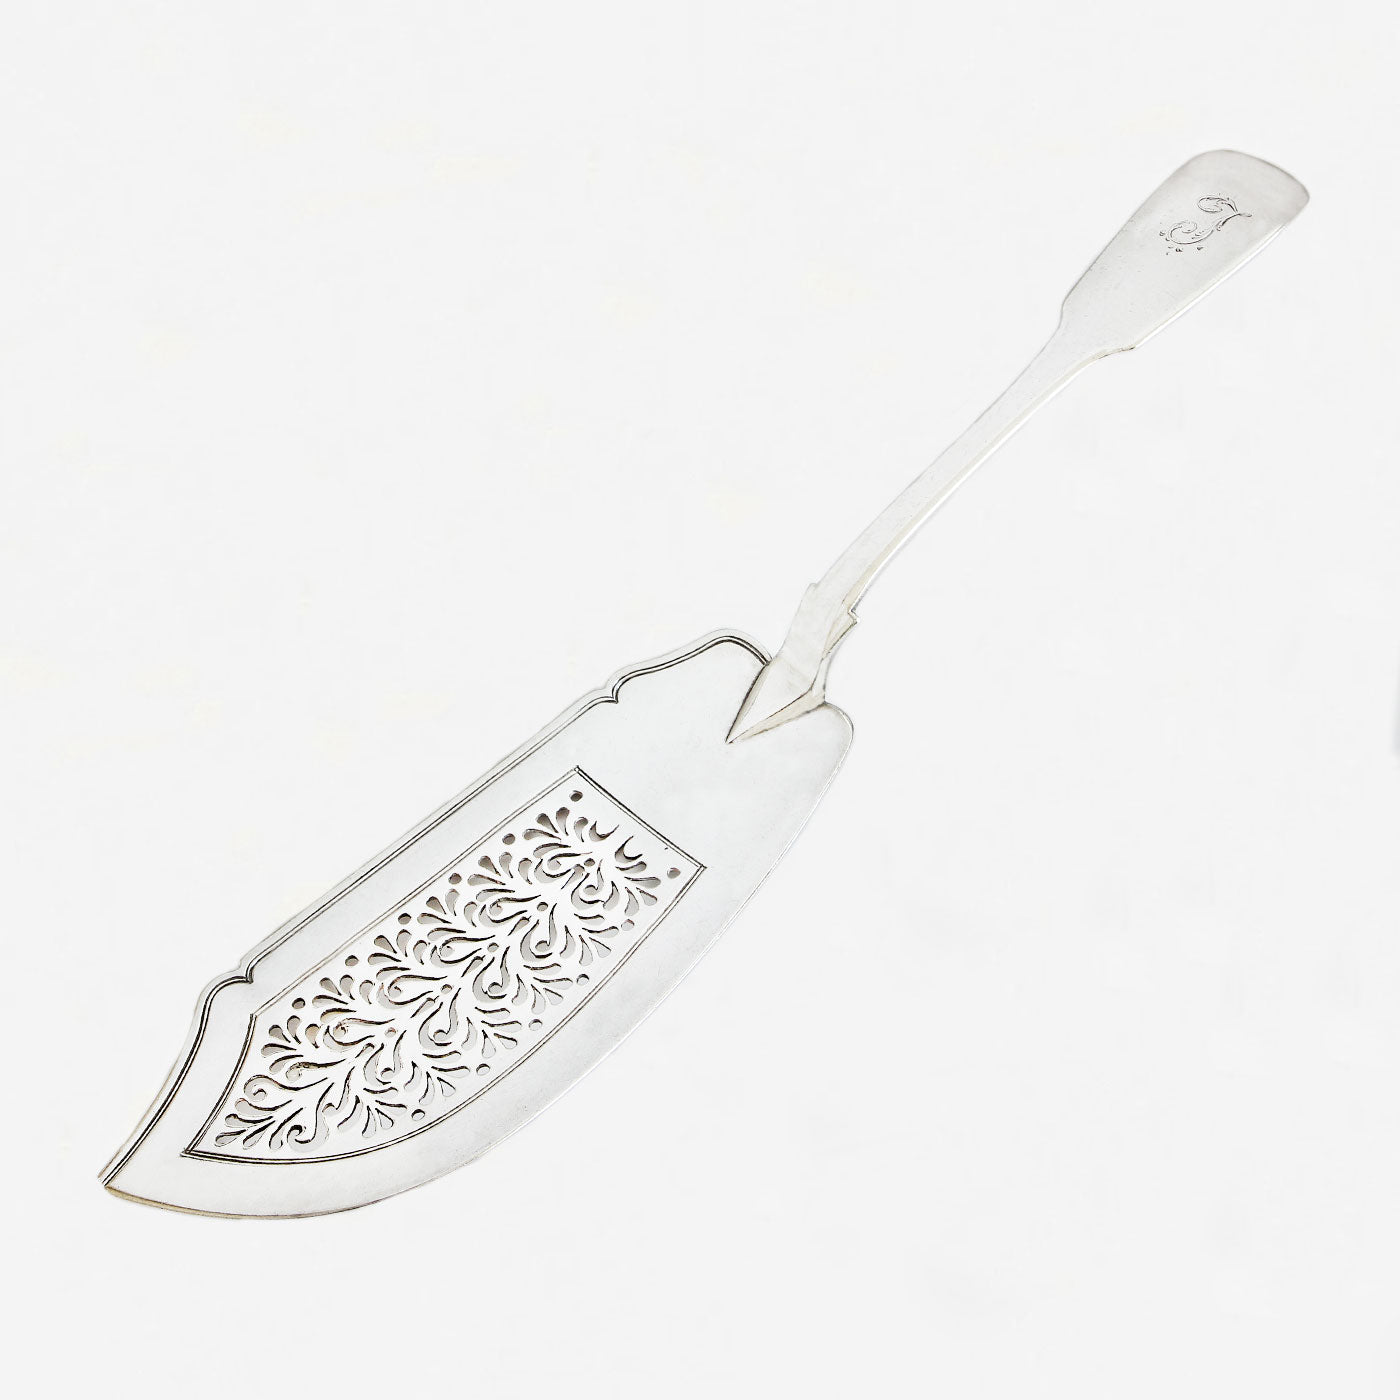 a secondhand  silver georgian fish slice dated 1825